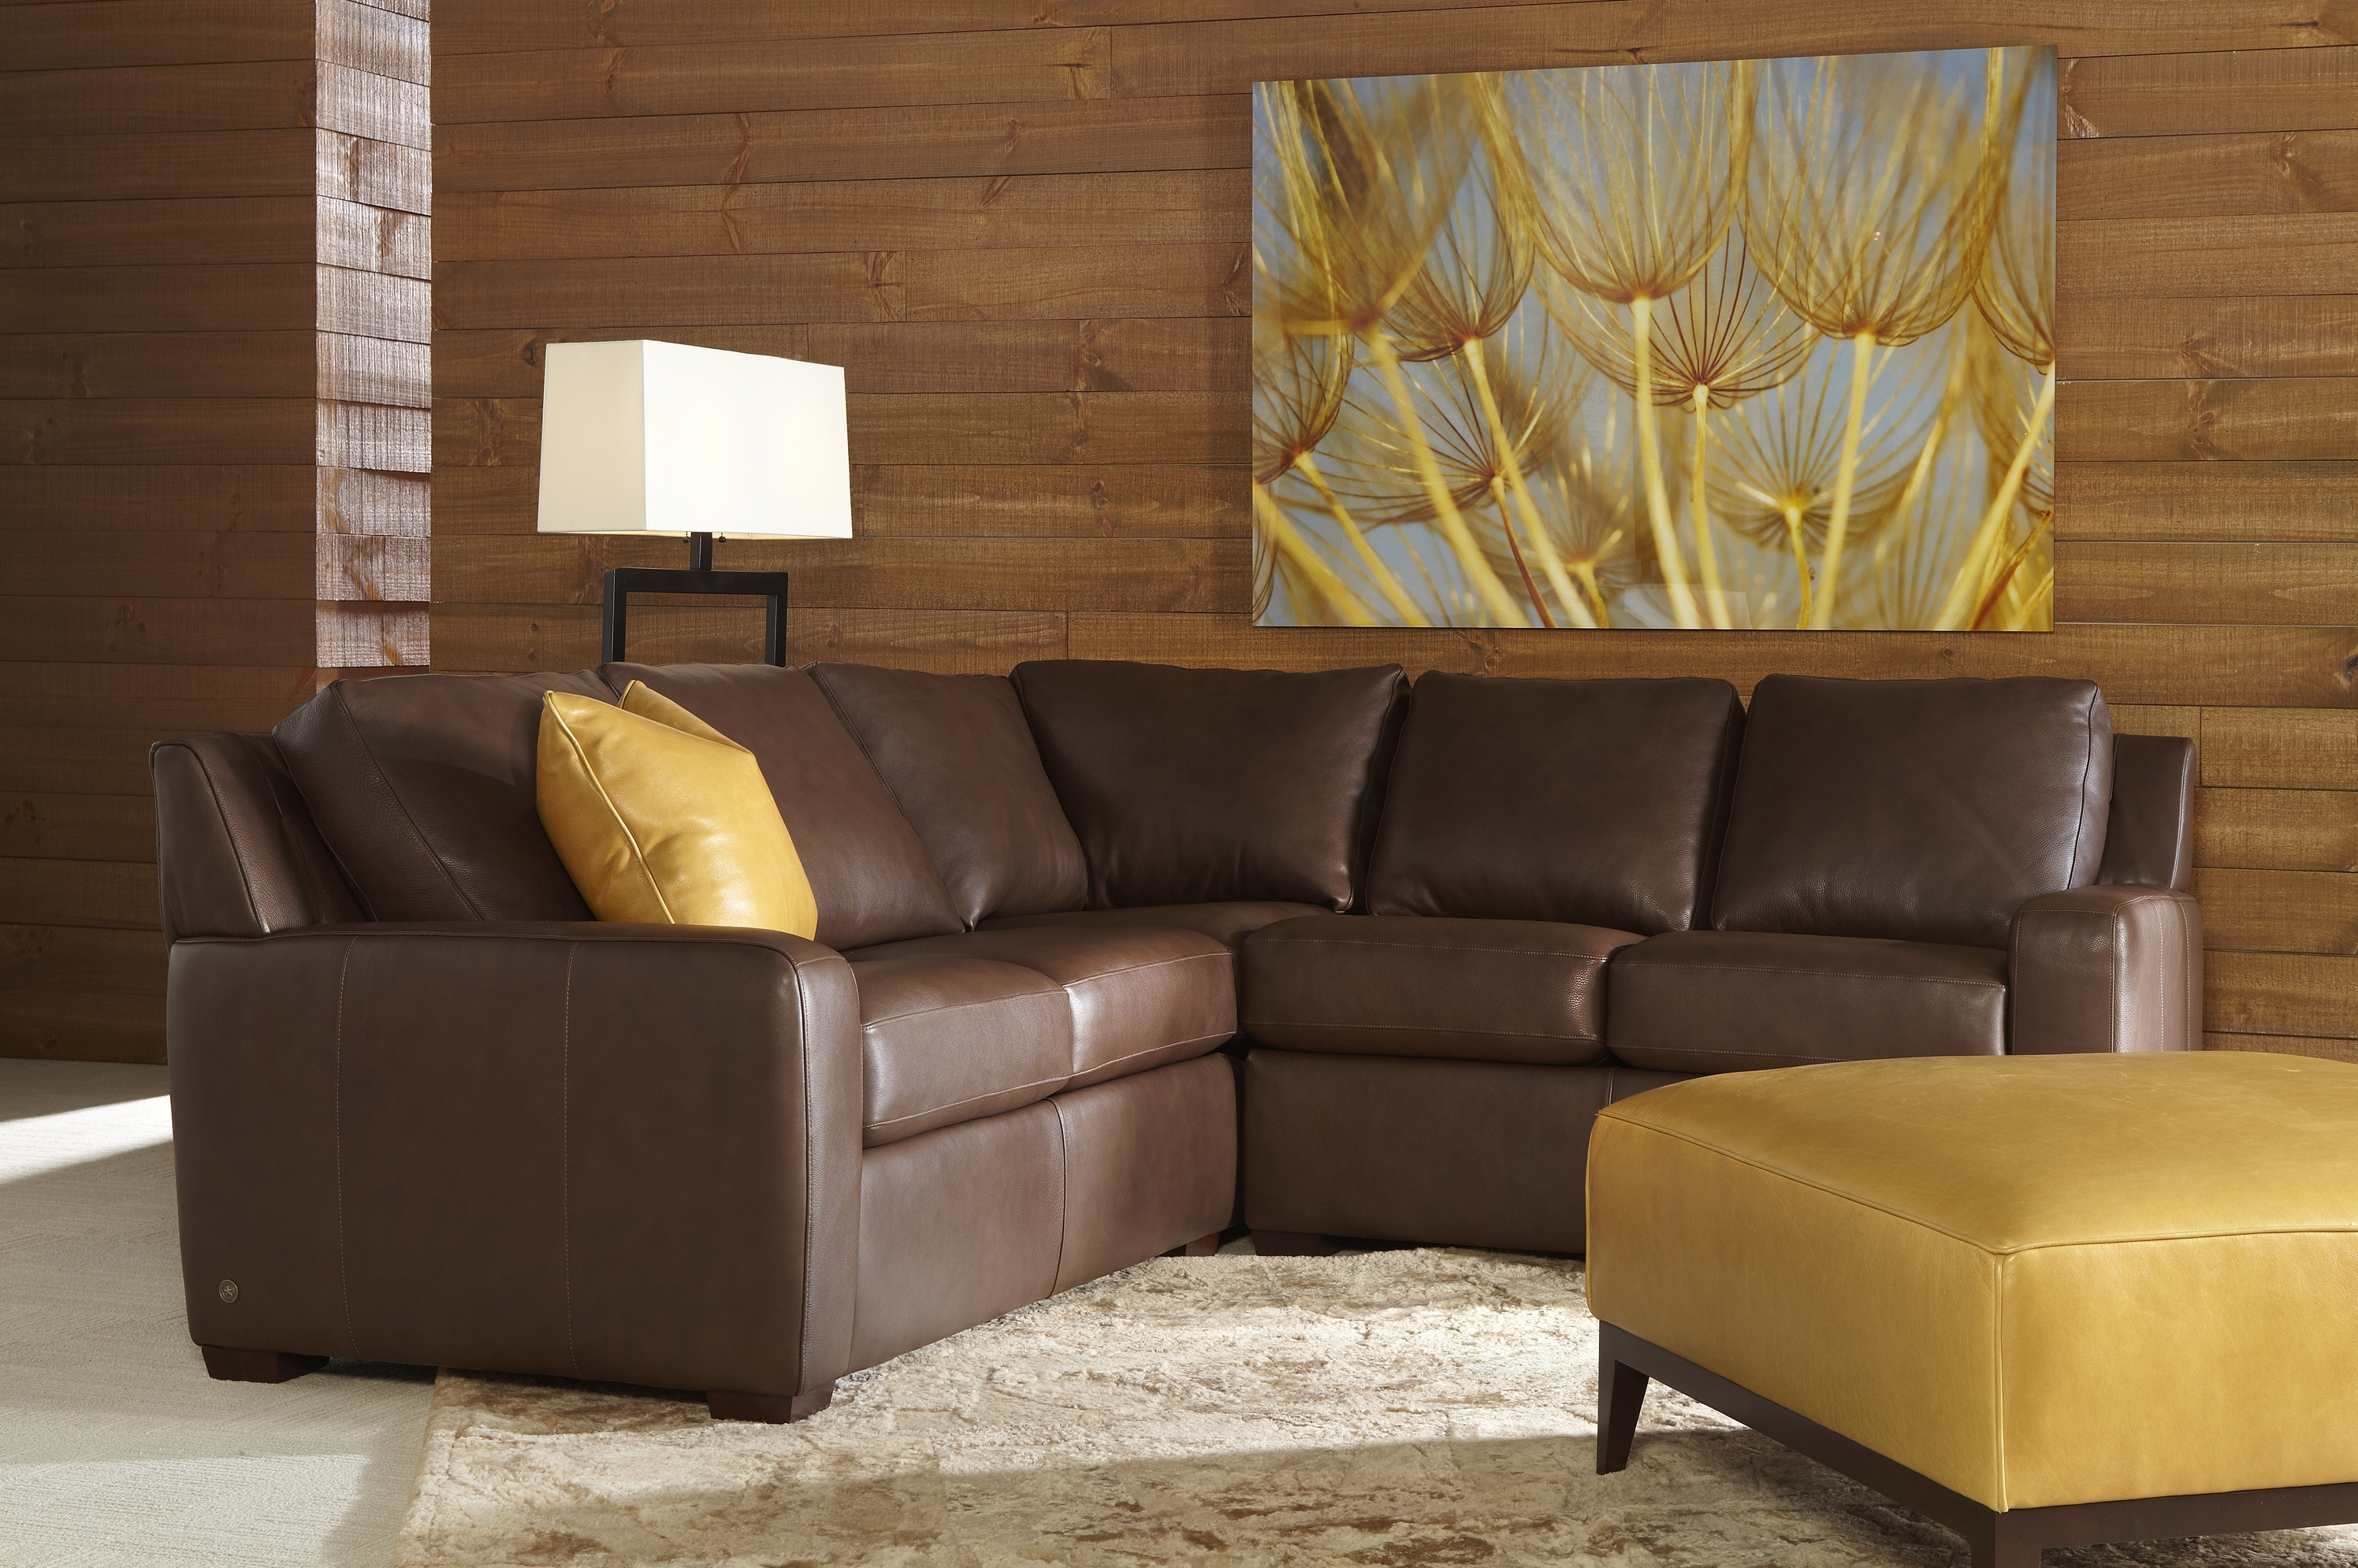 Jordans Sectional Sofas Throughout 2019 Sectional Sofas – Elegance And Style Tailored Just For Youand (Gallery 9 of 20)